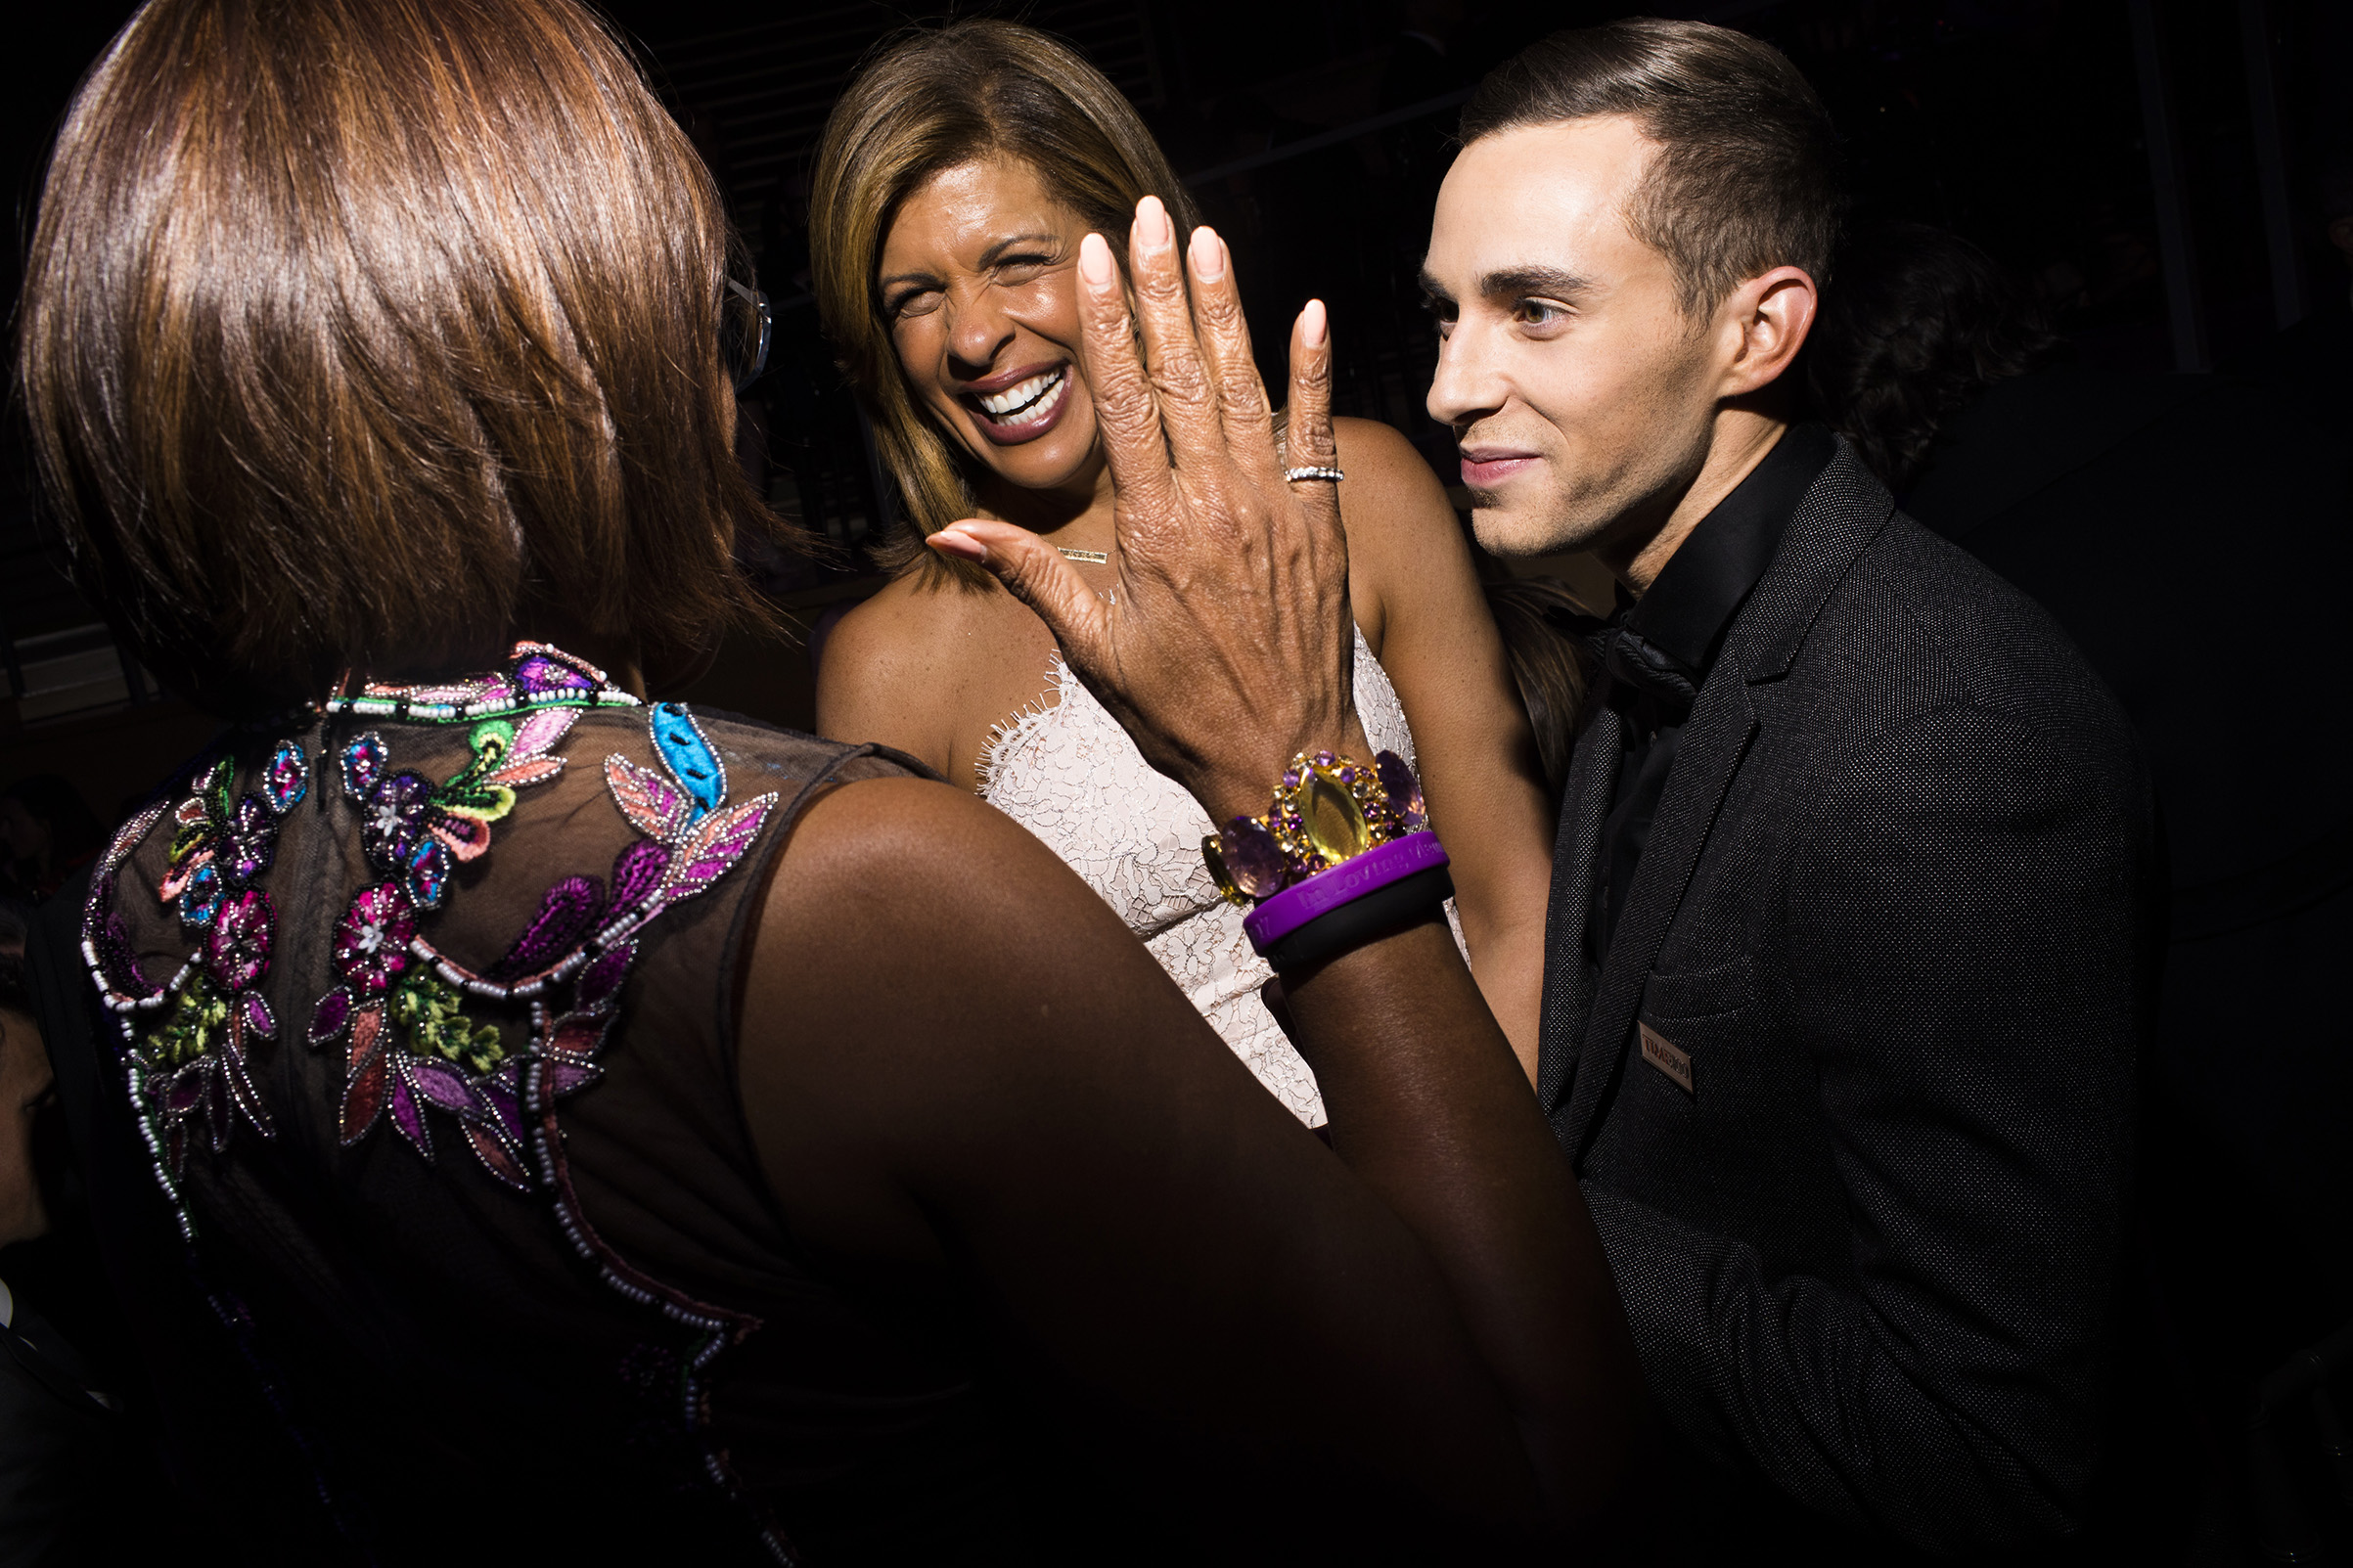 Gayle King, Hoda Kotb and Adam Rippon at the Time 100 Gala at Jazz at Lincoln Center on April 24, 2018 in New York City.